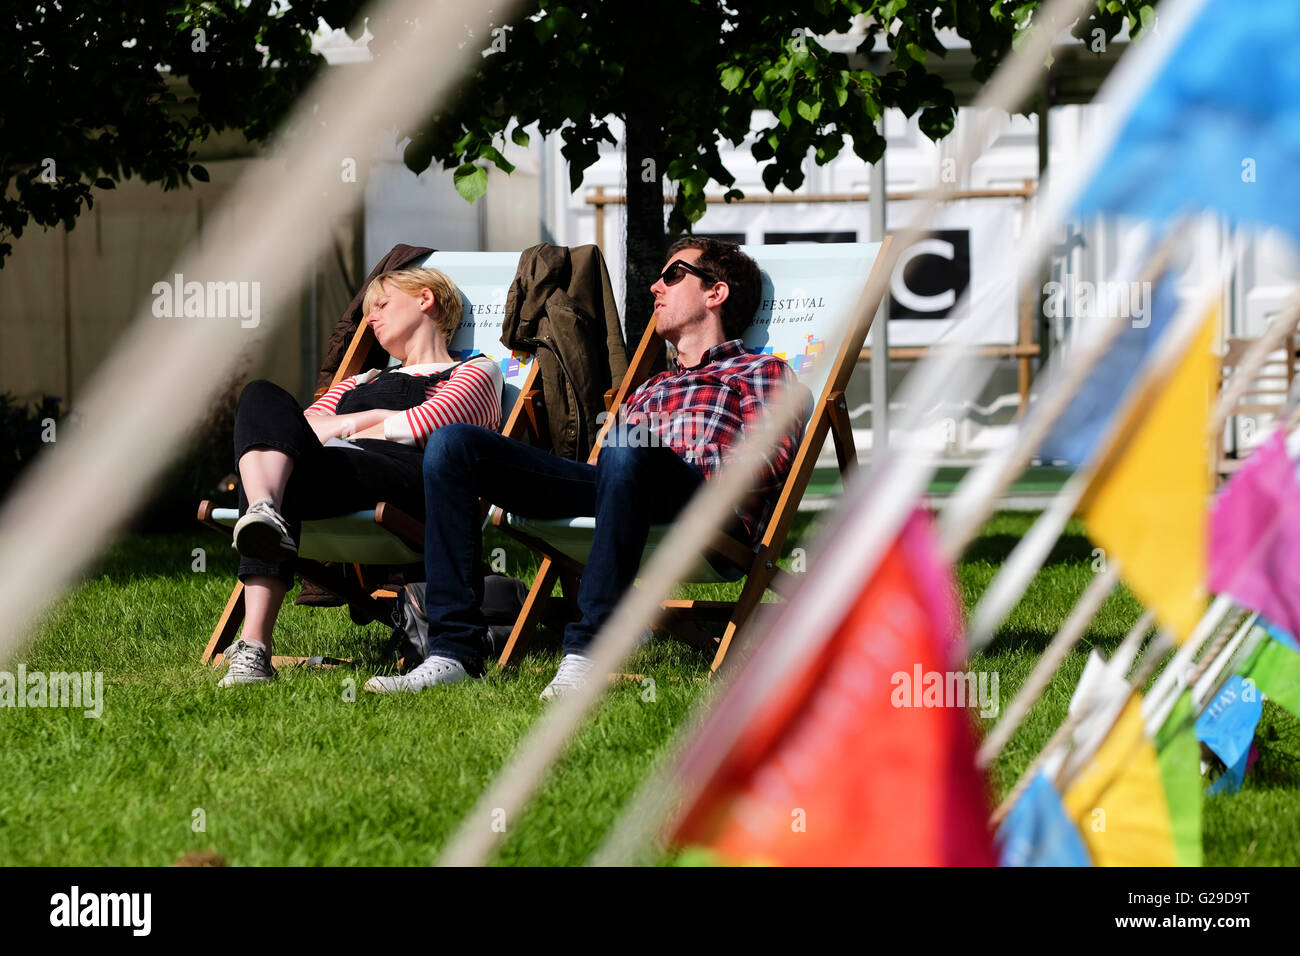 Hay Festival, Hay on Wye, Wales, UK May 2016. Opening day for this years literary and arts festival which runs until - Stock Image